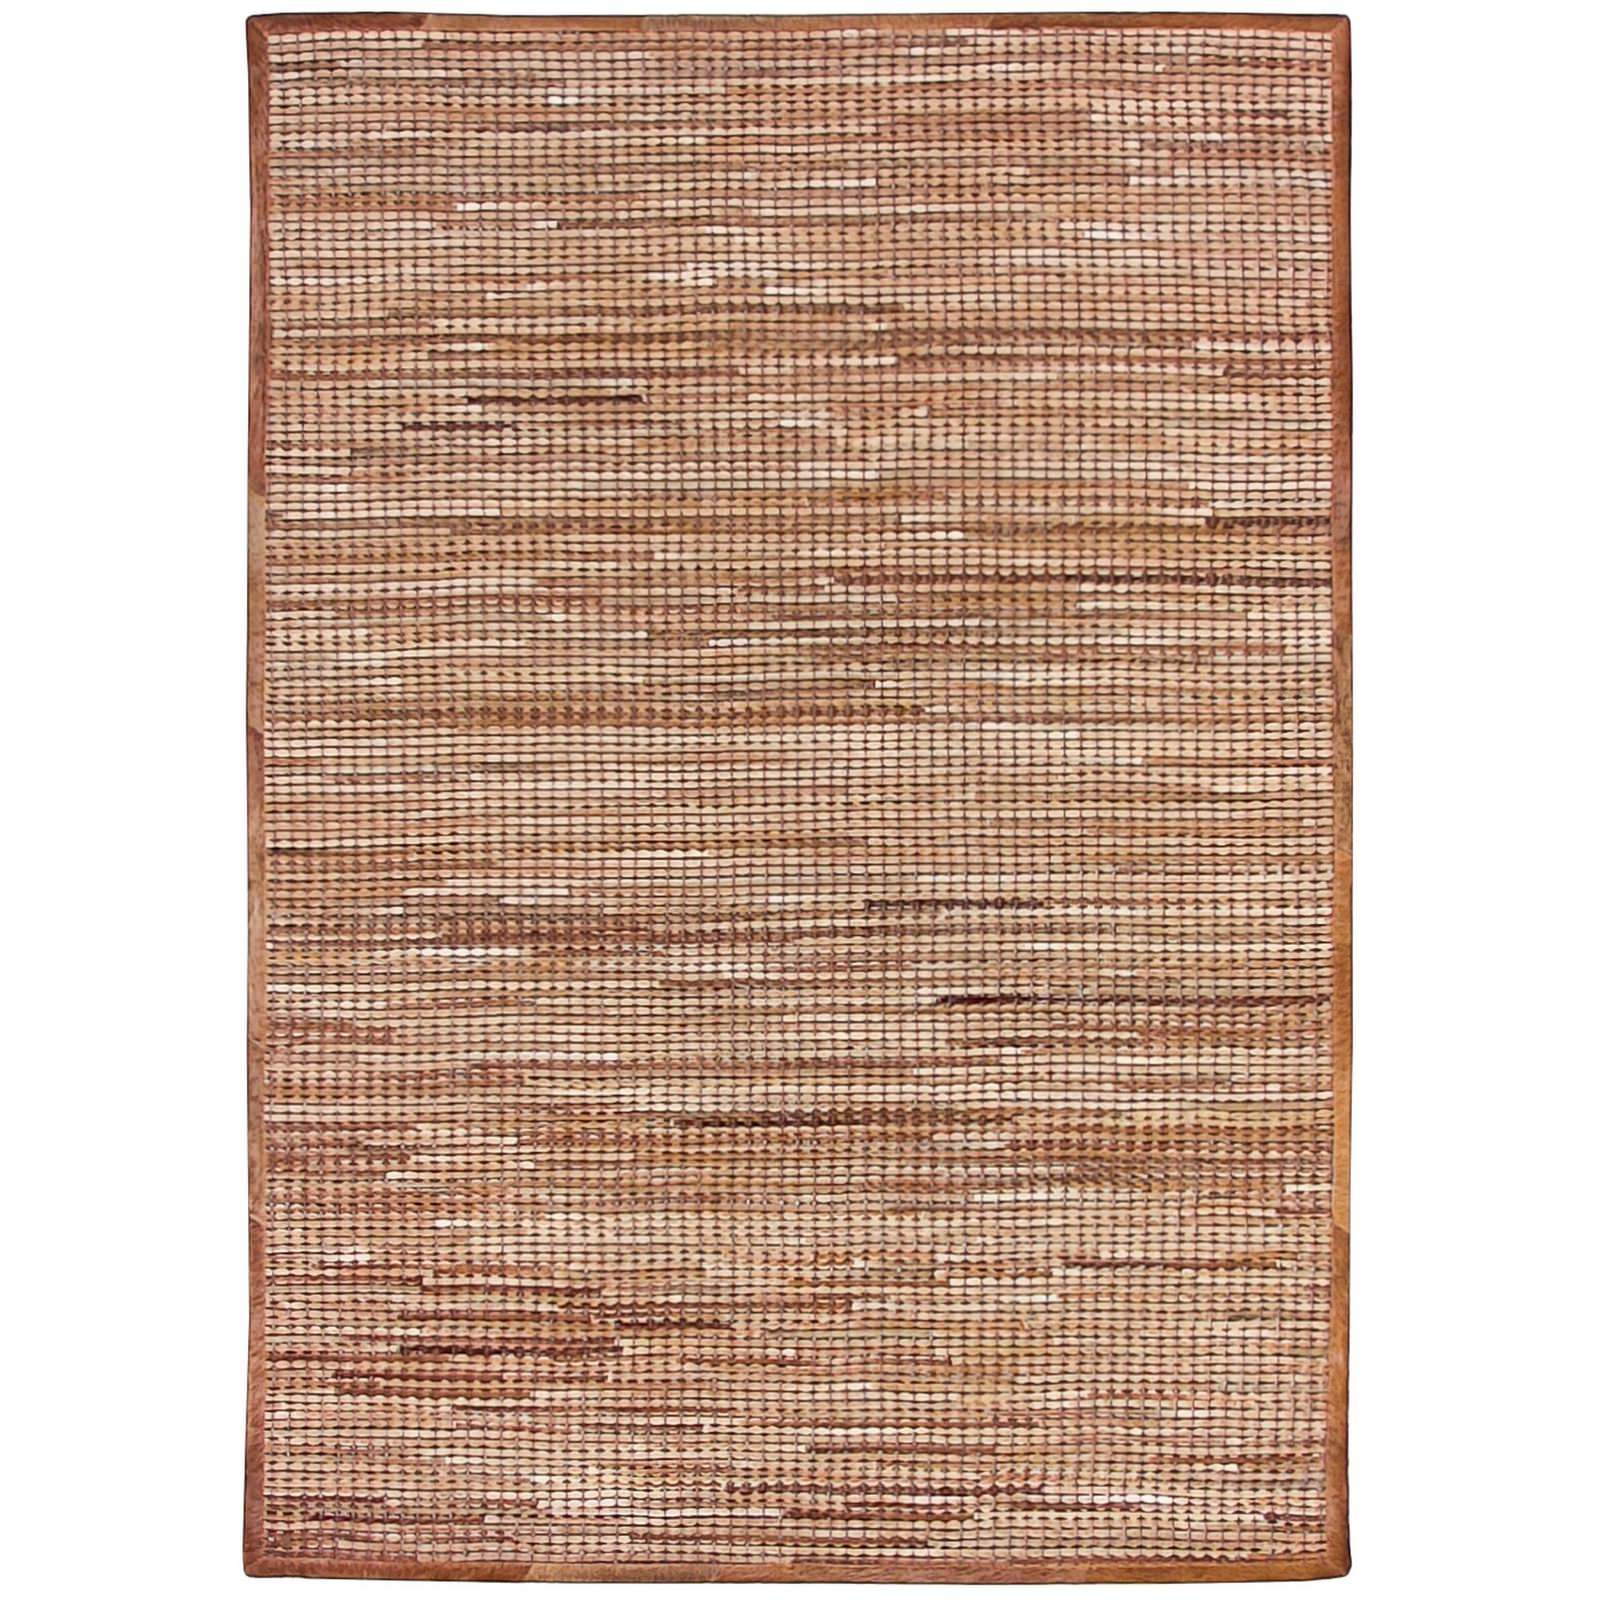 Chase Handwoven Hide & Leather Rug, 200x300cm, Caramel